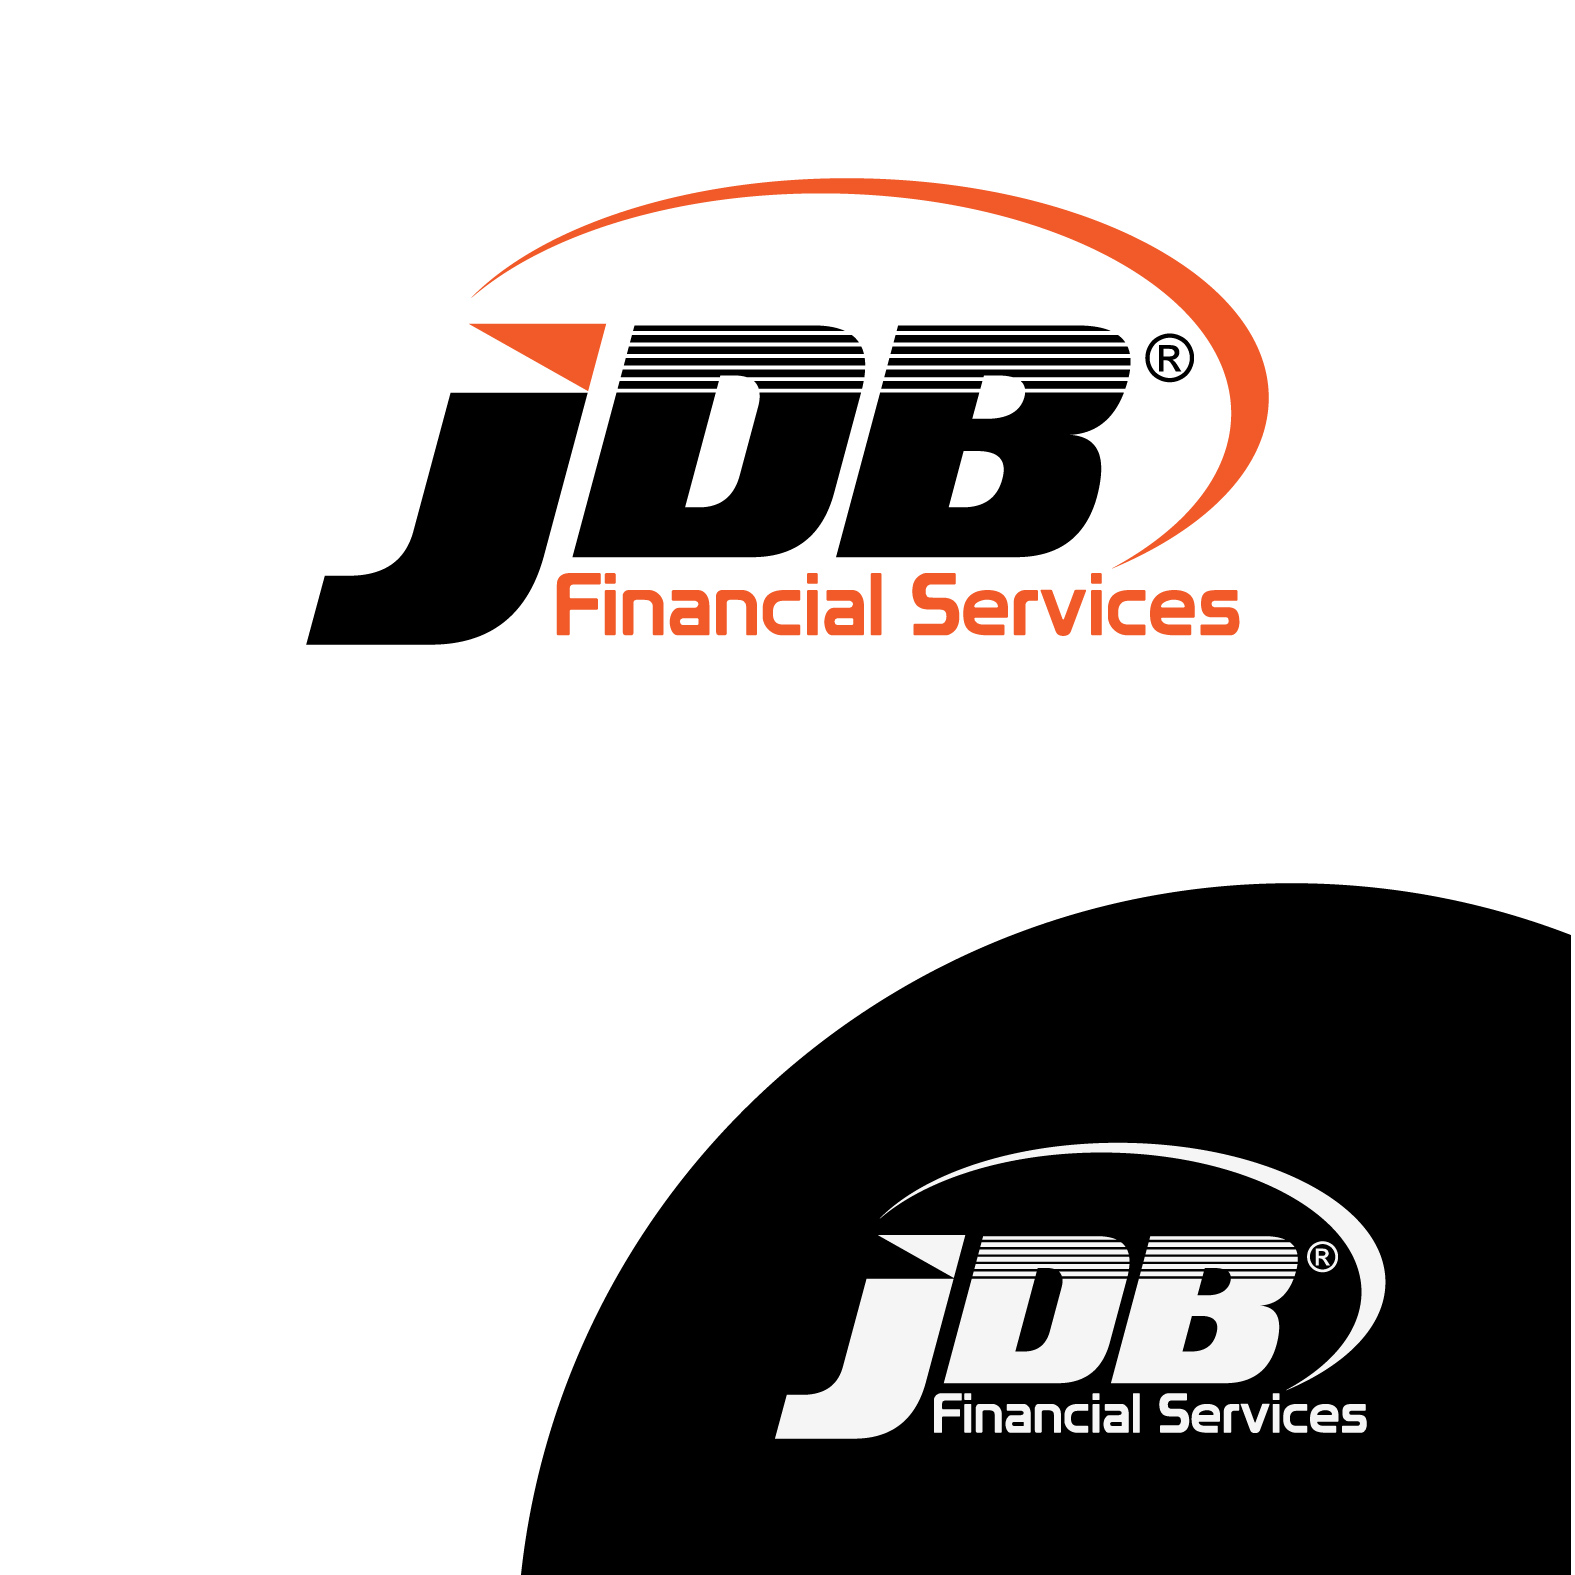 Logo Design by bisdak - Entry No. 7 in the Logo Design Contest Unique Logo Design Wanted for JDB Financial Services.